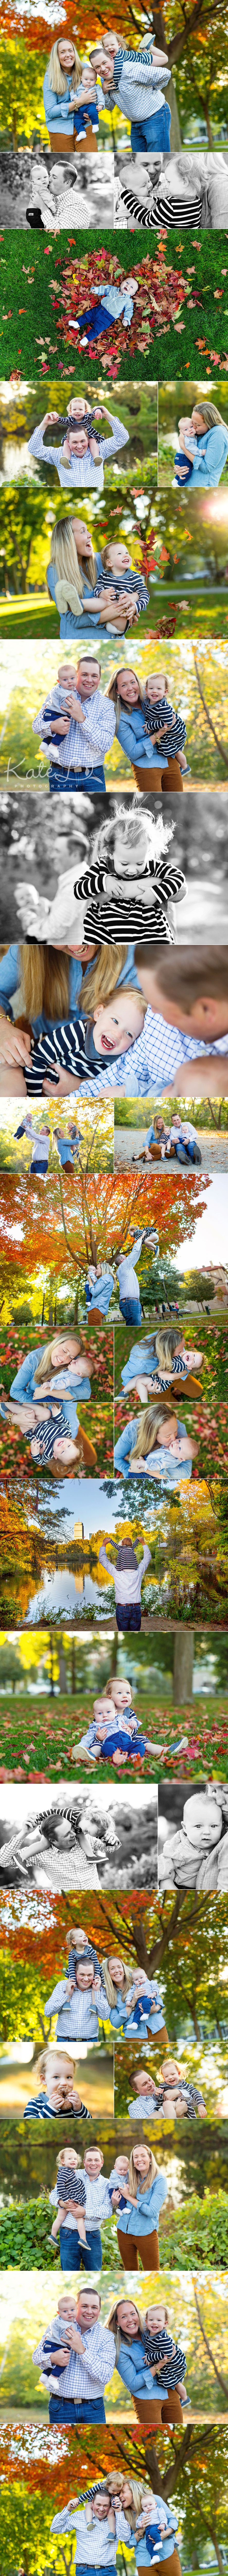 Wellesley family photographer Kate Lemmon documents a family of four hanging out in downtown Boston, using colorful natural light.